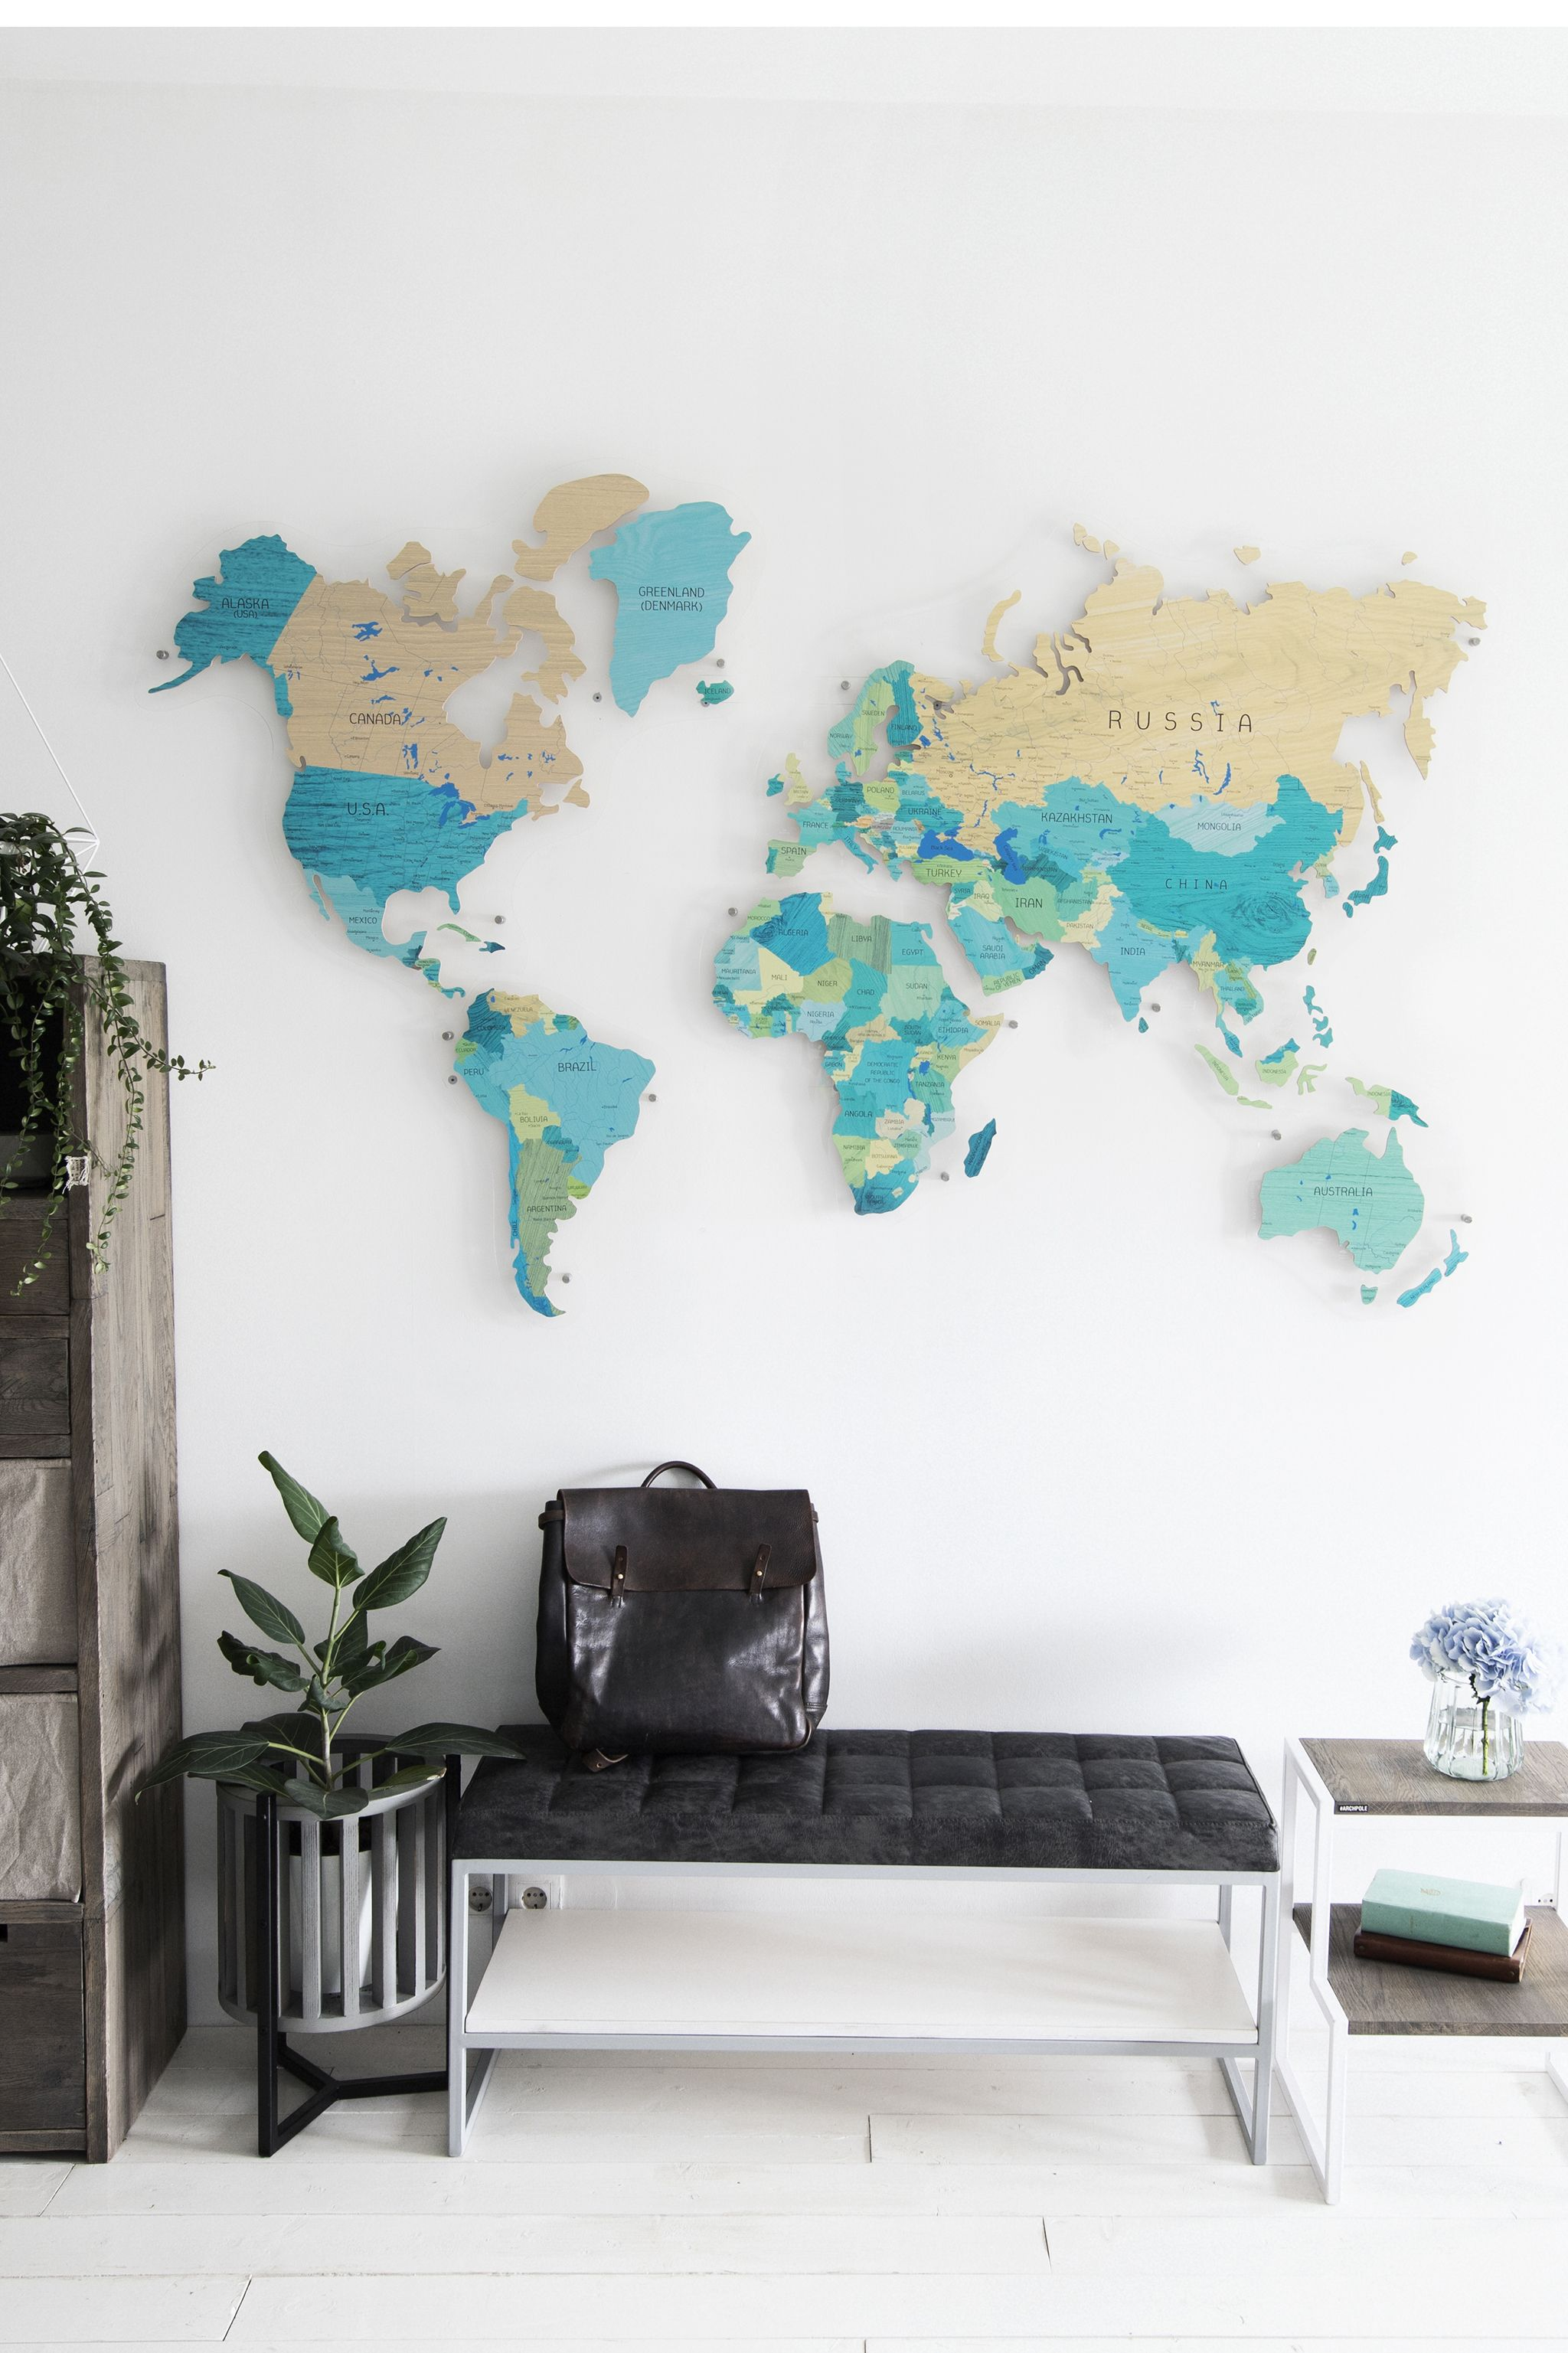 Teal World Map By Gadenmap Push Pin Travel Map For Wall Decor In Office Room Bedroom Living Room Kid S World Map Wall Decor World Map Decor Map Wall Decor